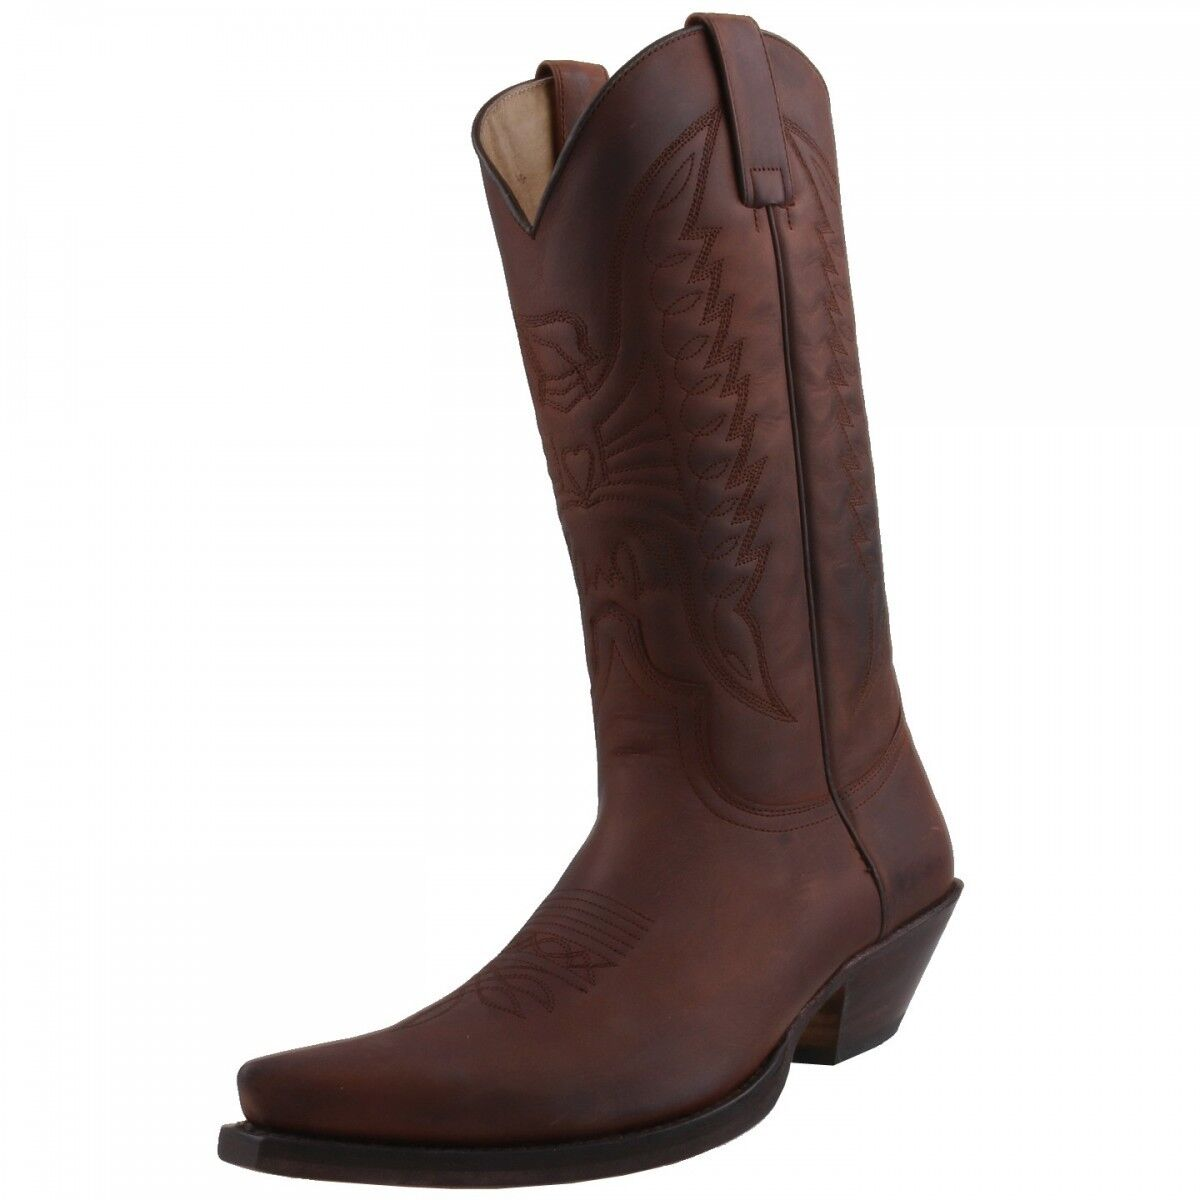 New Sendra Boots Men's shoes 2073 Cowboy Boots Boots Leather shoes Brown